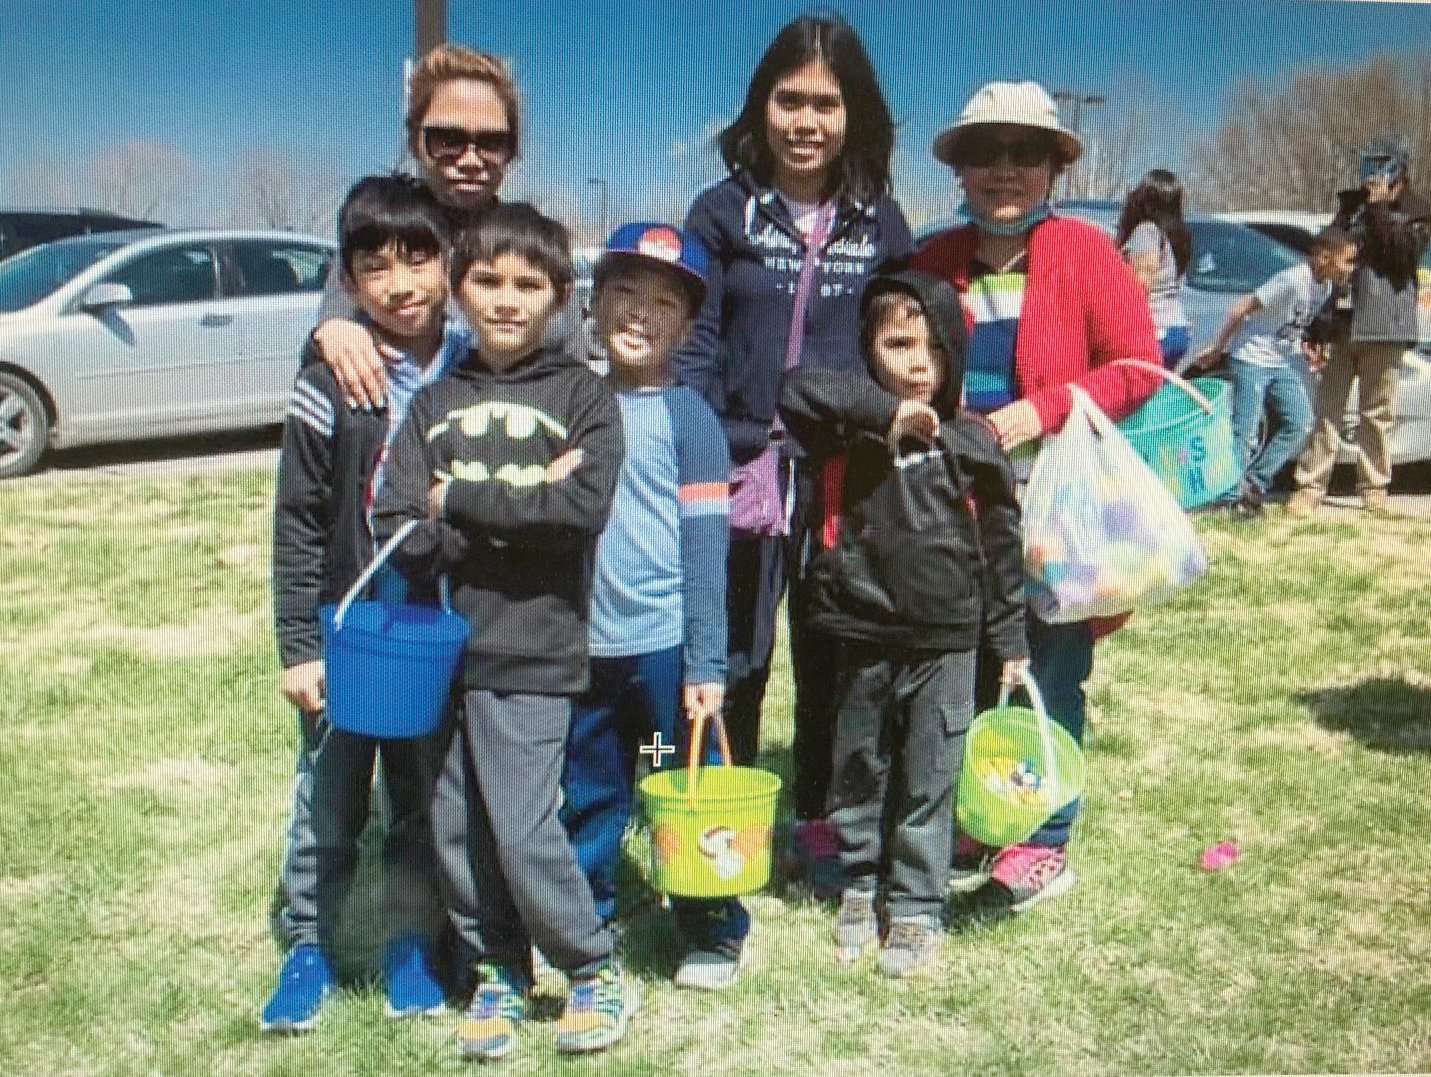 On Saturday, the third annual NORTH organization saw a successful turnout for its annual Easter Egg Hunt. The Fresh Lemonade Stand donated free drinks and Kona Ice was on hand as well. Also at the event was Katy Trail Community Health's mobile unit, which provided around 100 COVID-19 vaccines to area residents.